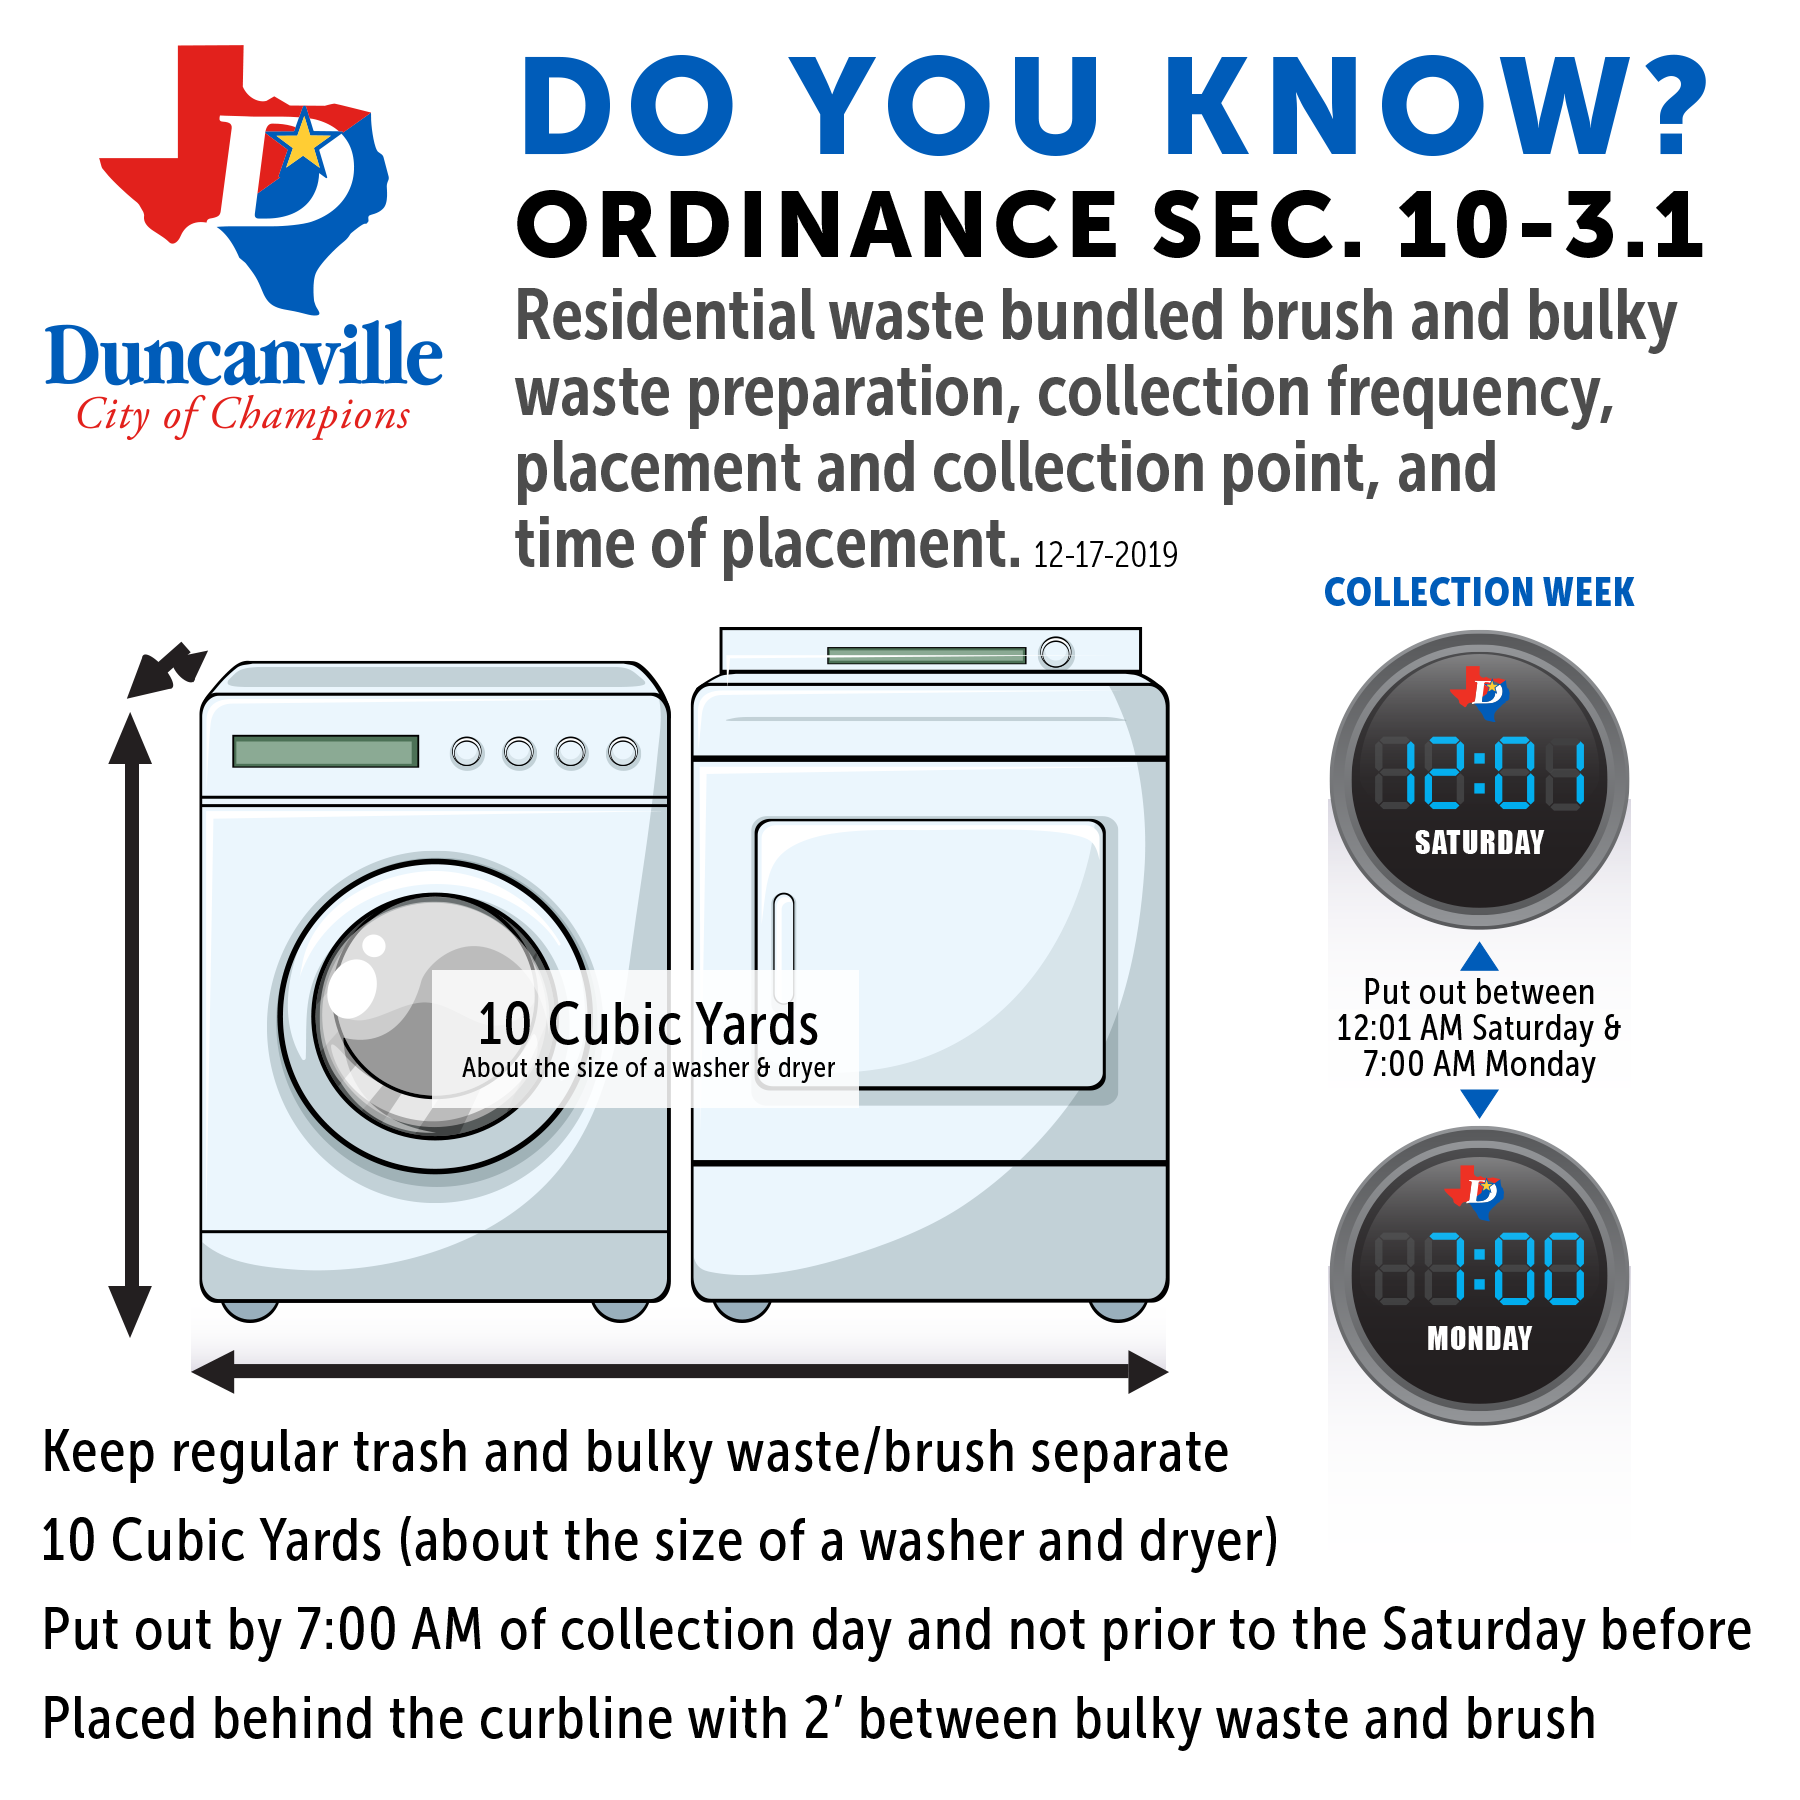 Ordinance Sec. 10-3.1 - Residential waste bundled brush and bulky waste preparation, collection frequency, placement and collection point, and time of placement.